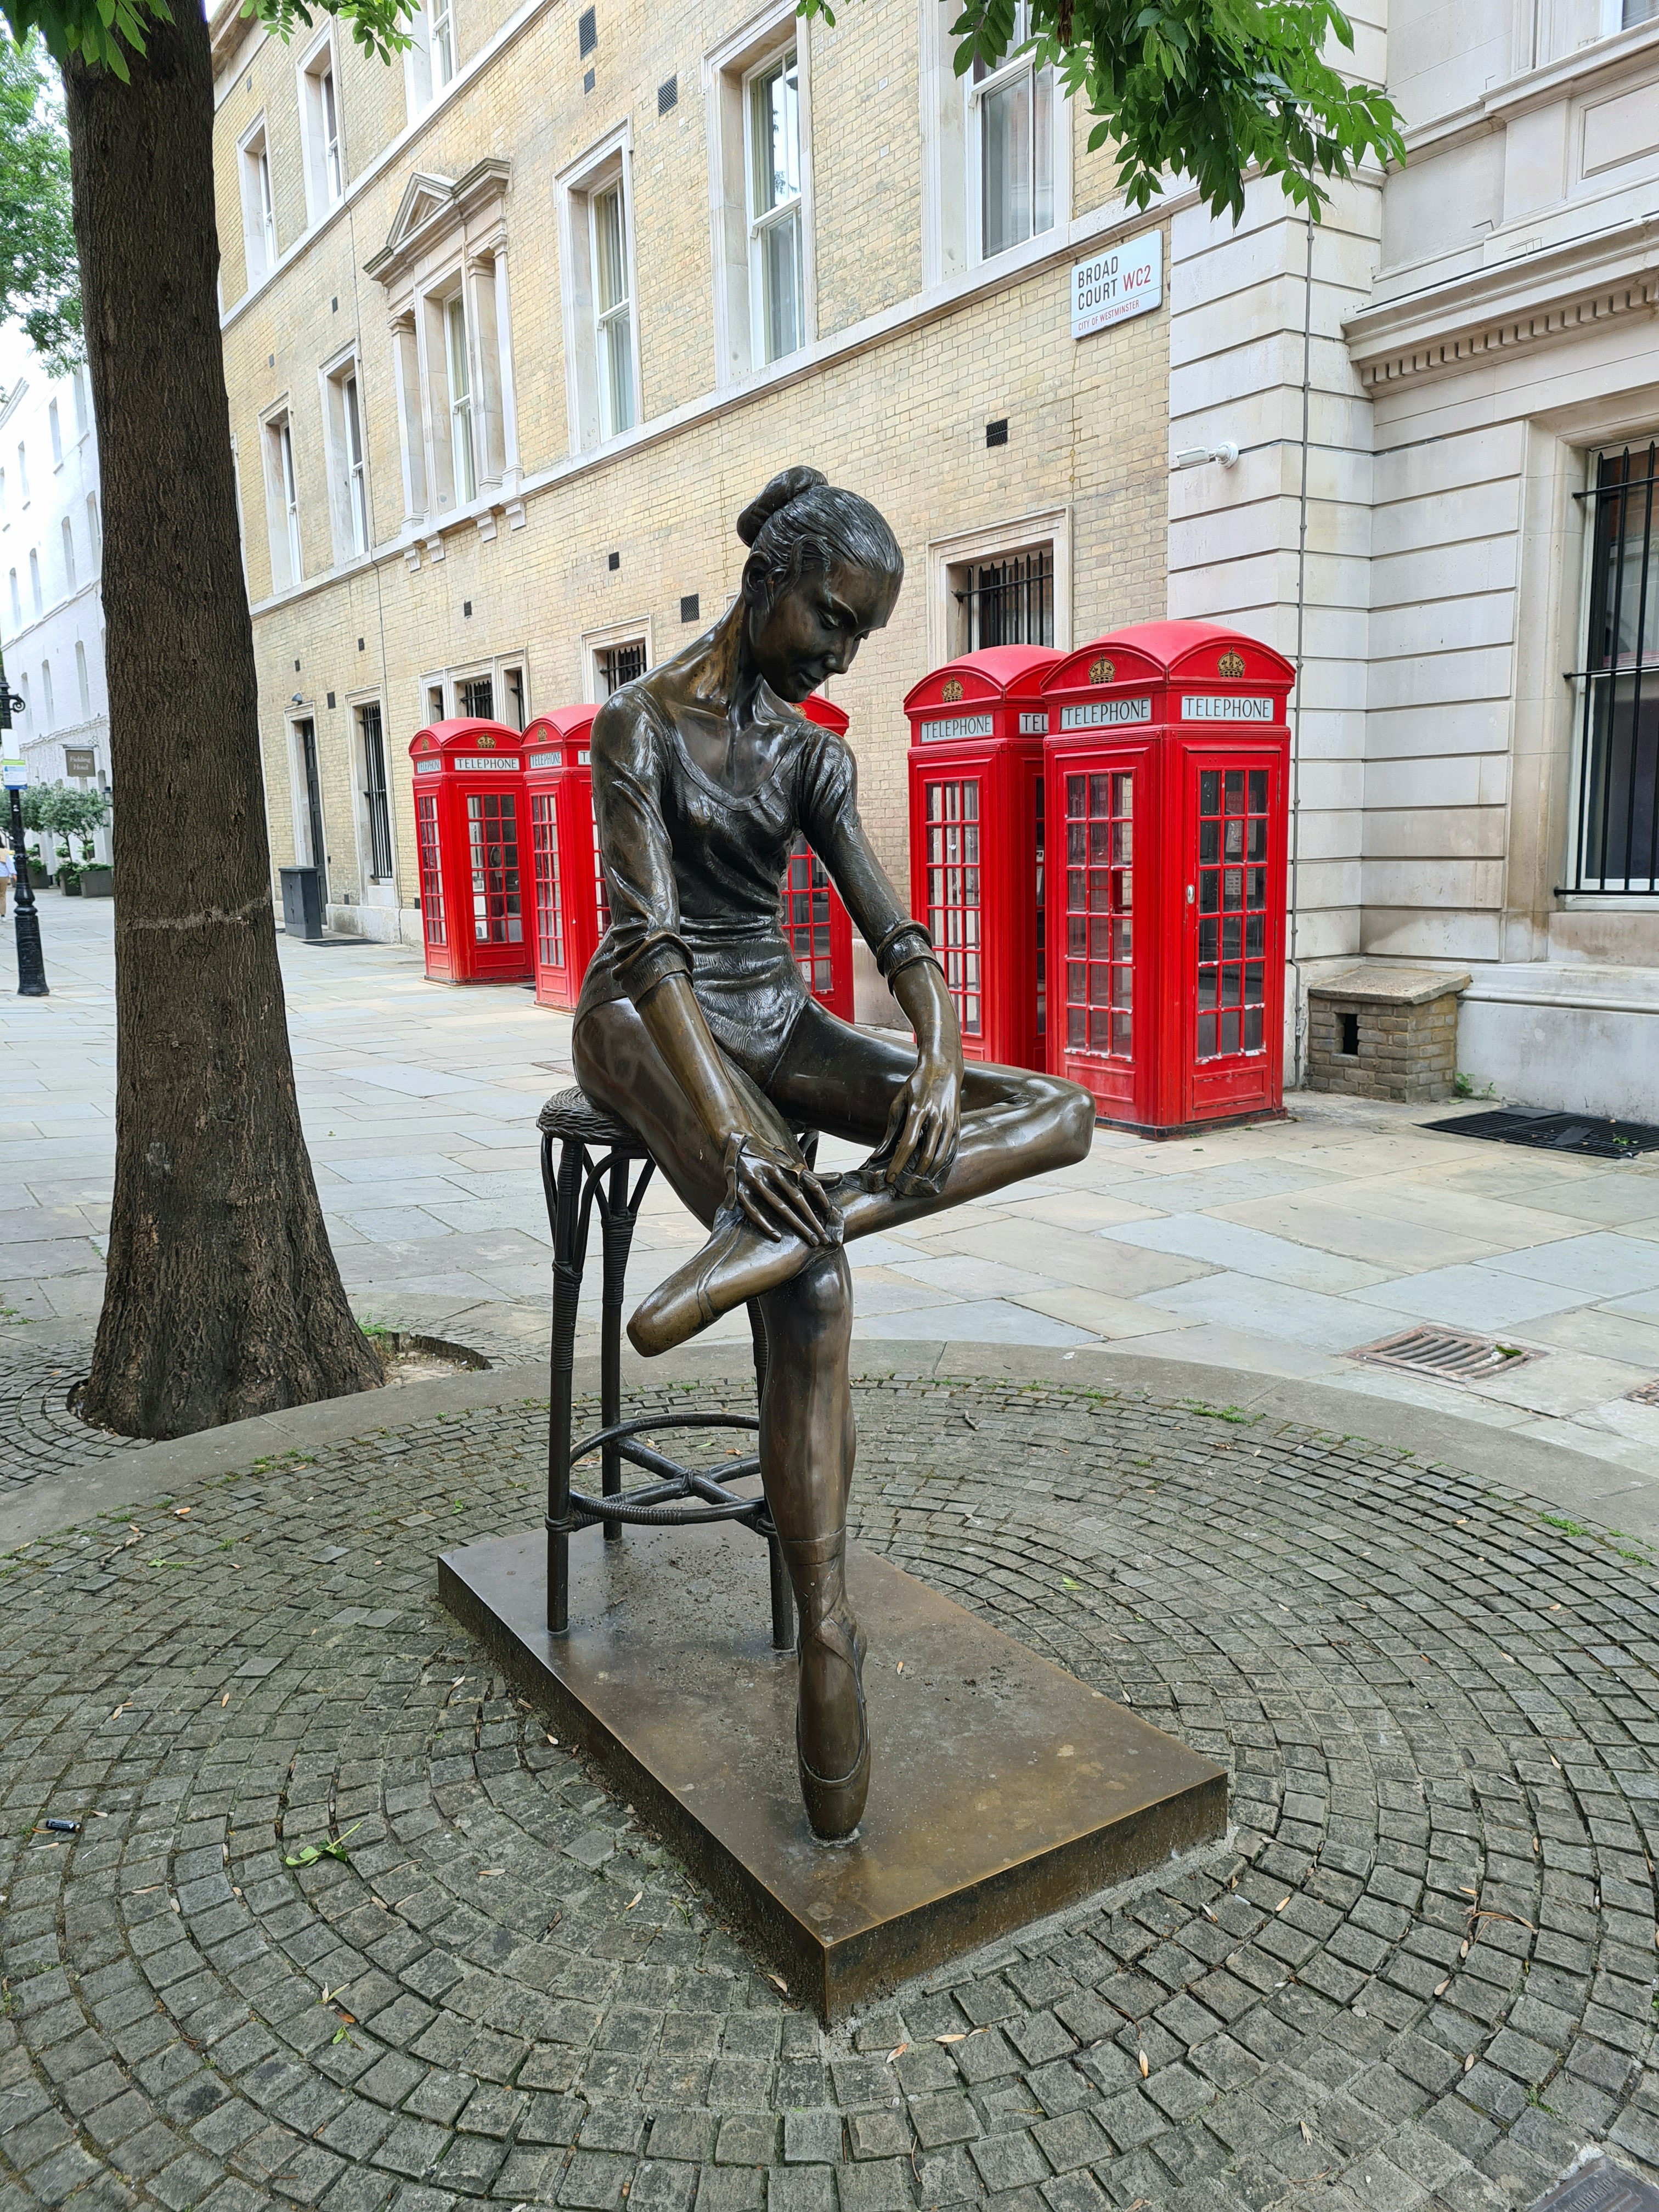 Young Dancer by Enzo Plazzotta. Broad Court, opposite Royal Opera House